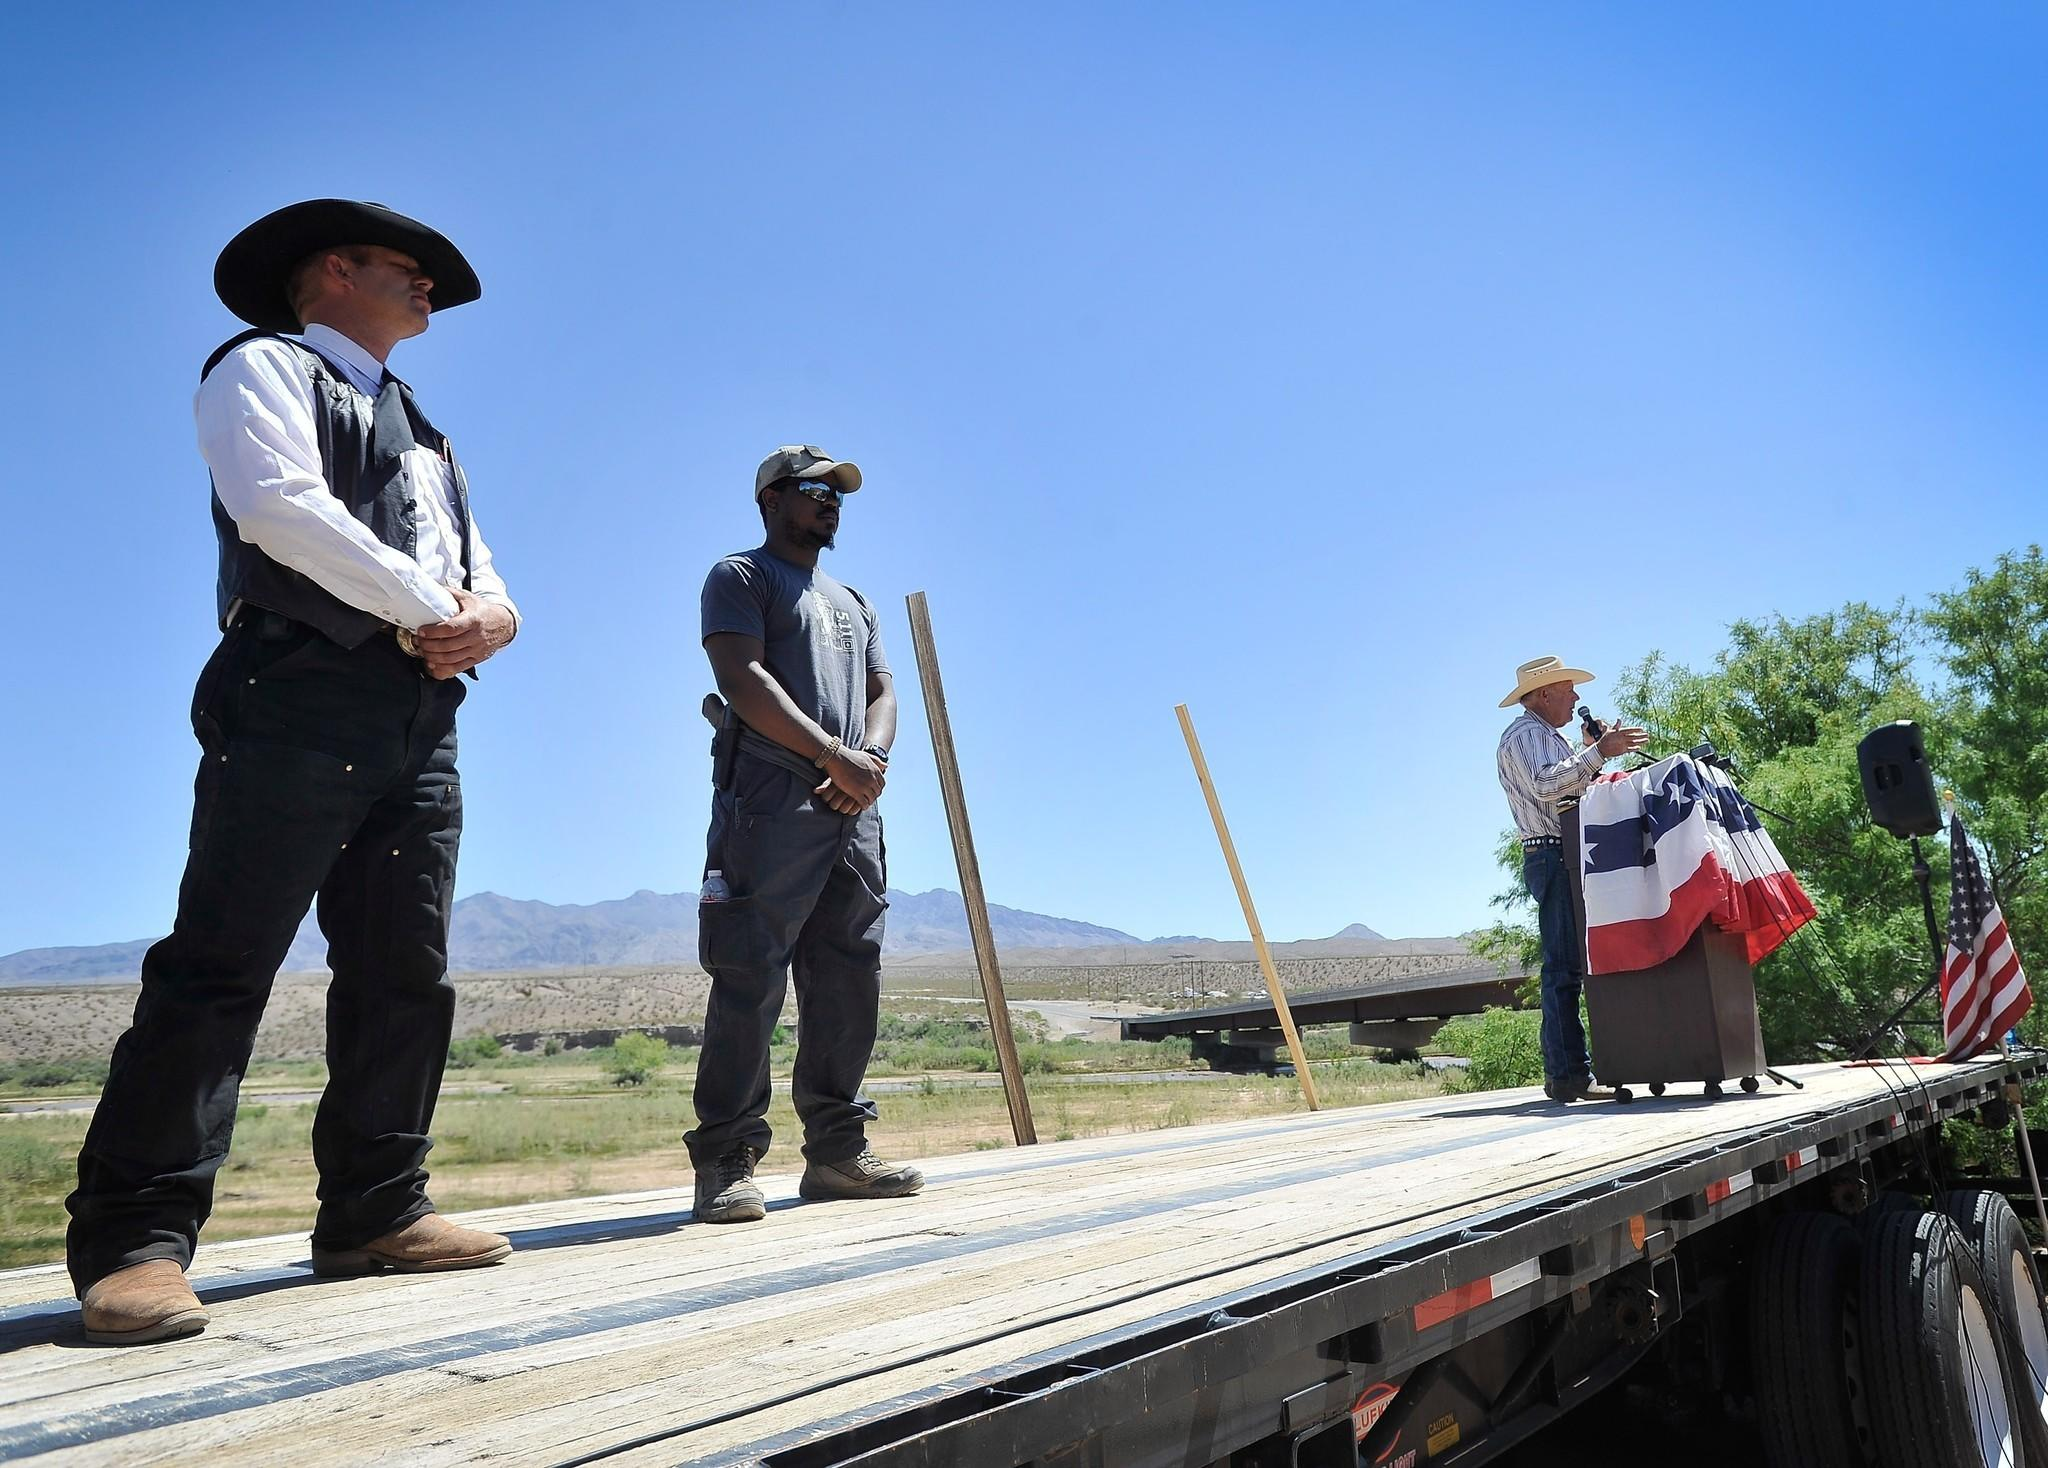 Rancher Cliven Bundy, with two supporters, speaks at a news conference Thursday near his ranch in Bunkerville, Nev.